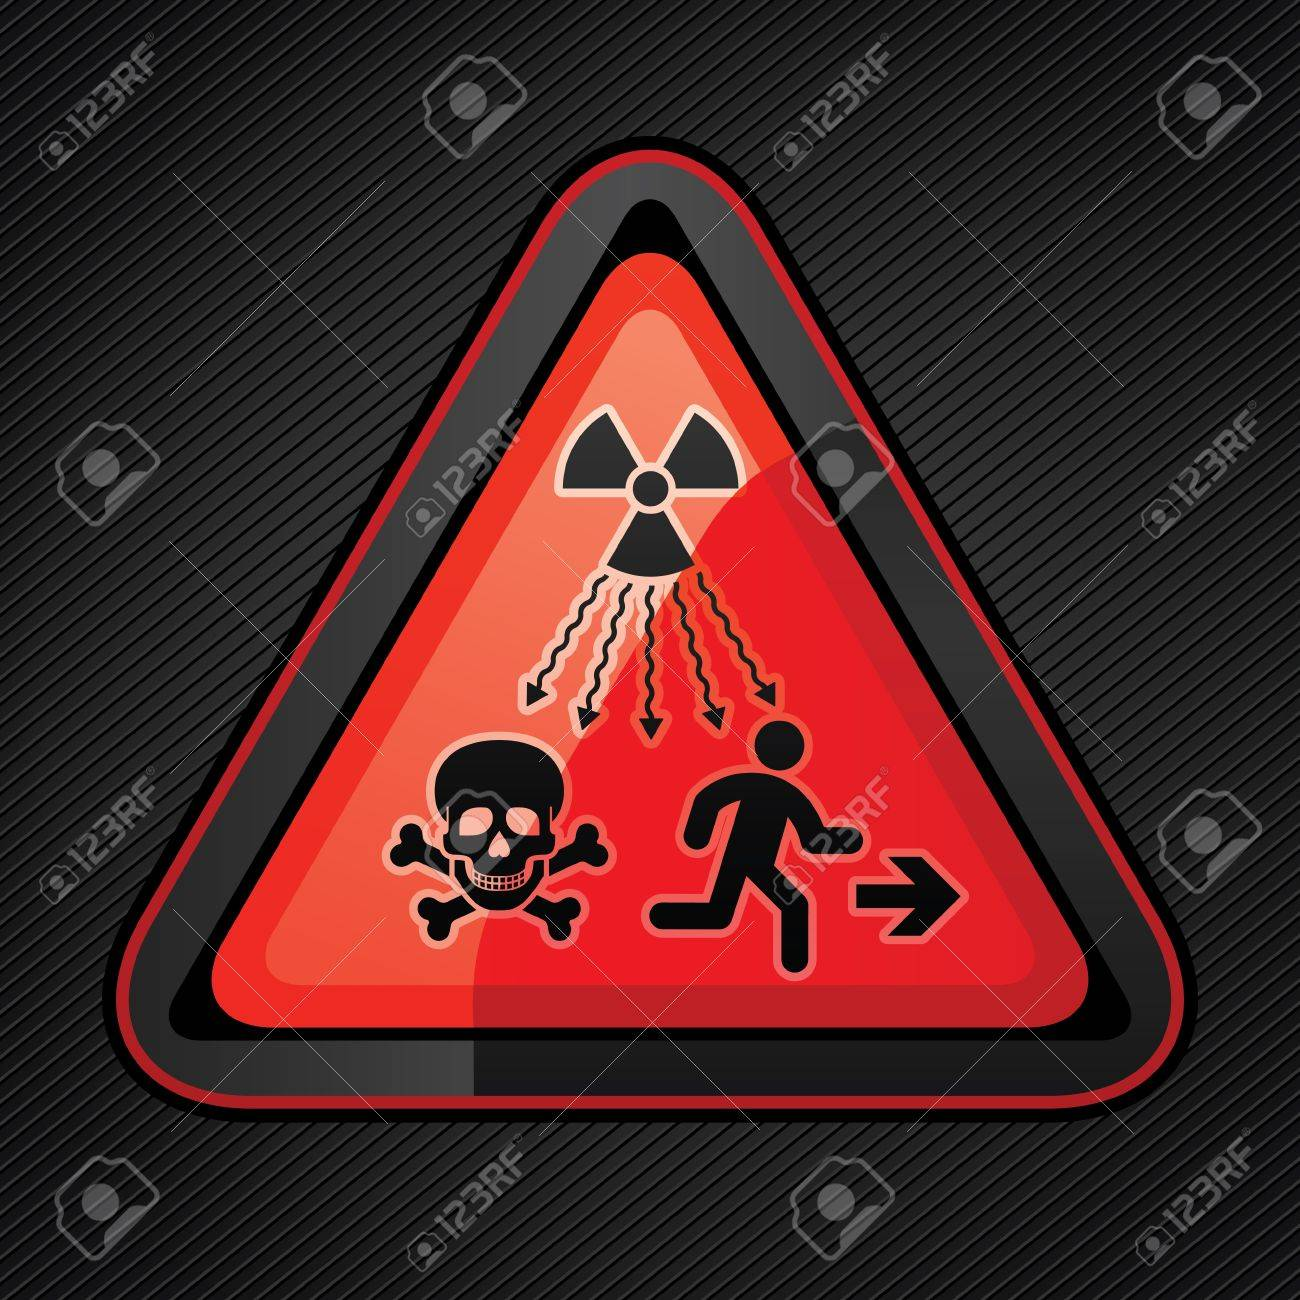 New Symbol Launched to Warn Public About Radiation Dangers Stock Vector - 16111098